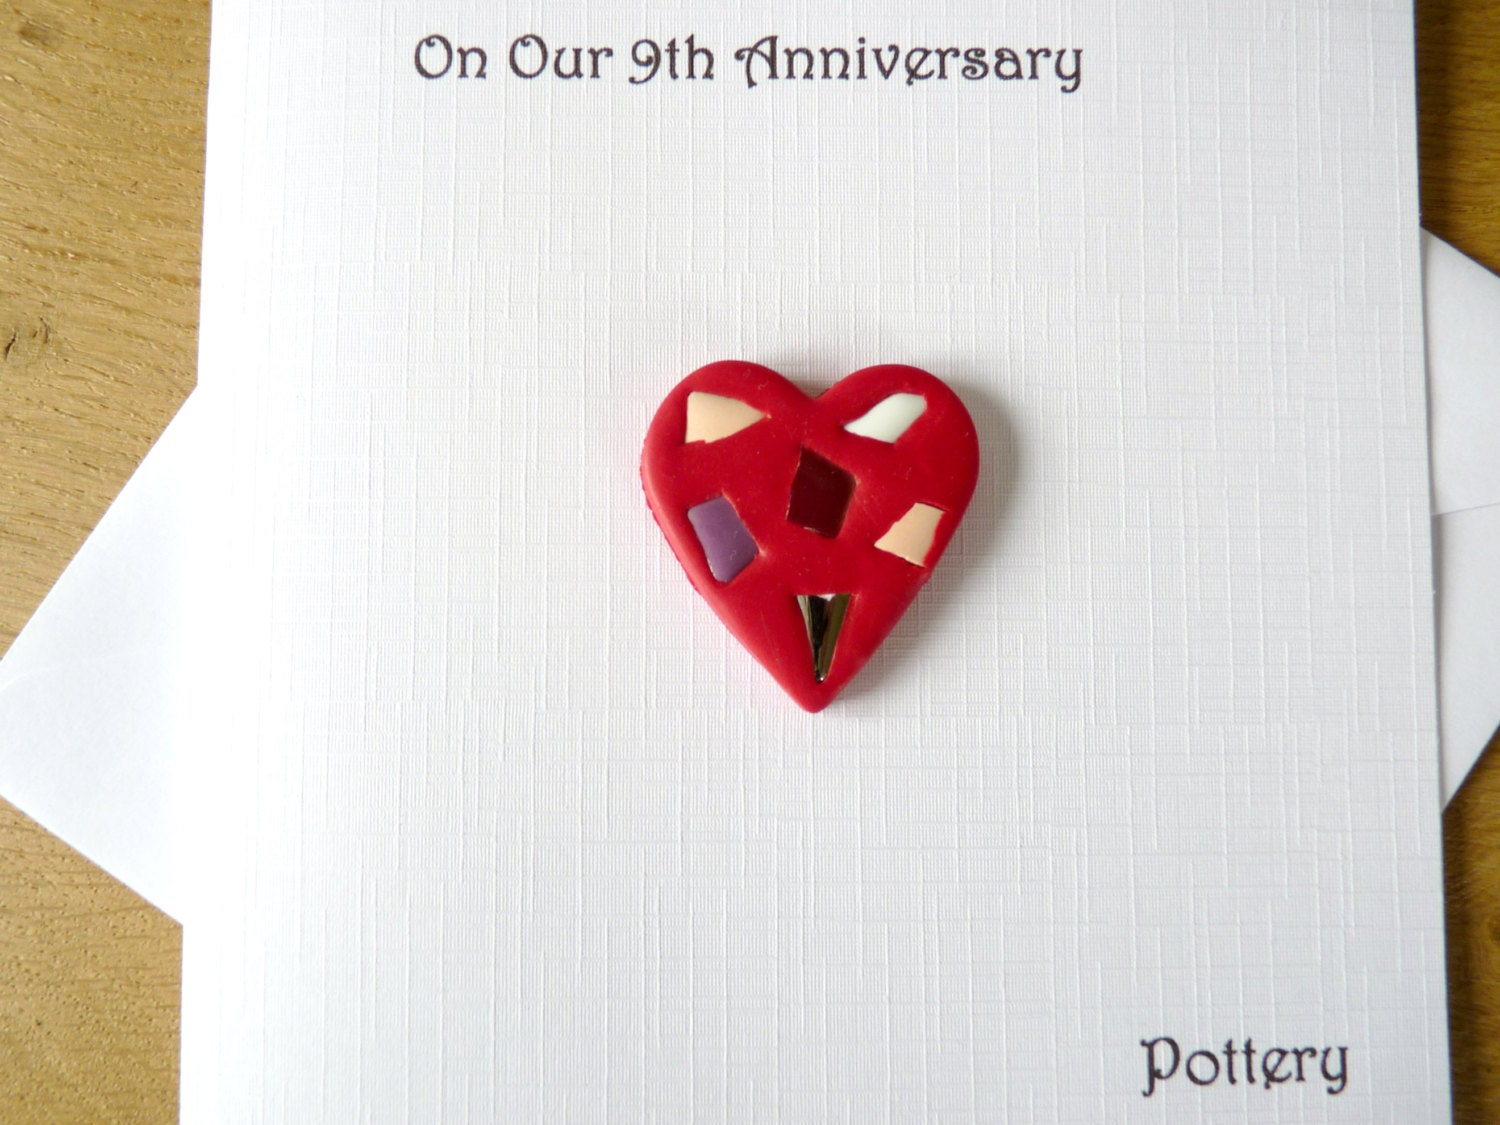 9th Year Wedding Anniversary Gifts: 9th Wedding Anniversary Card Pottery Ninth Anniversary Gift